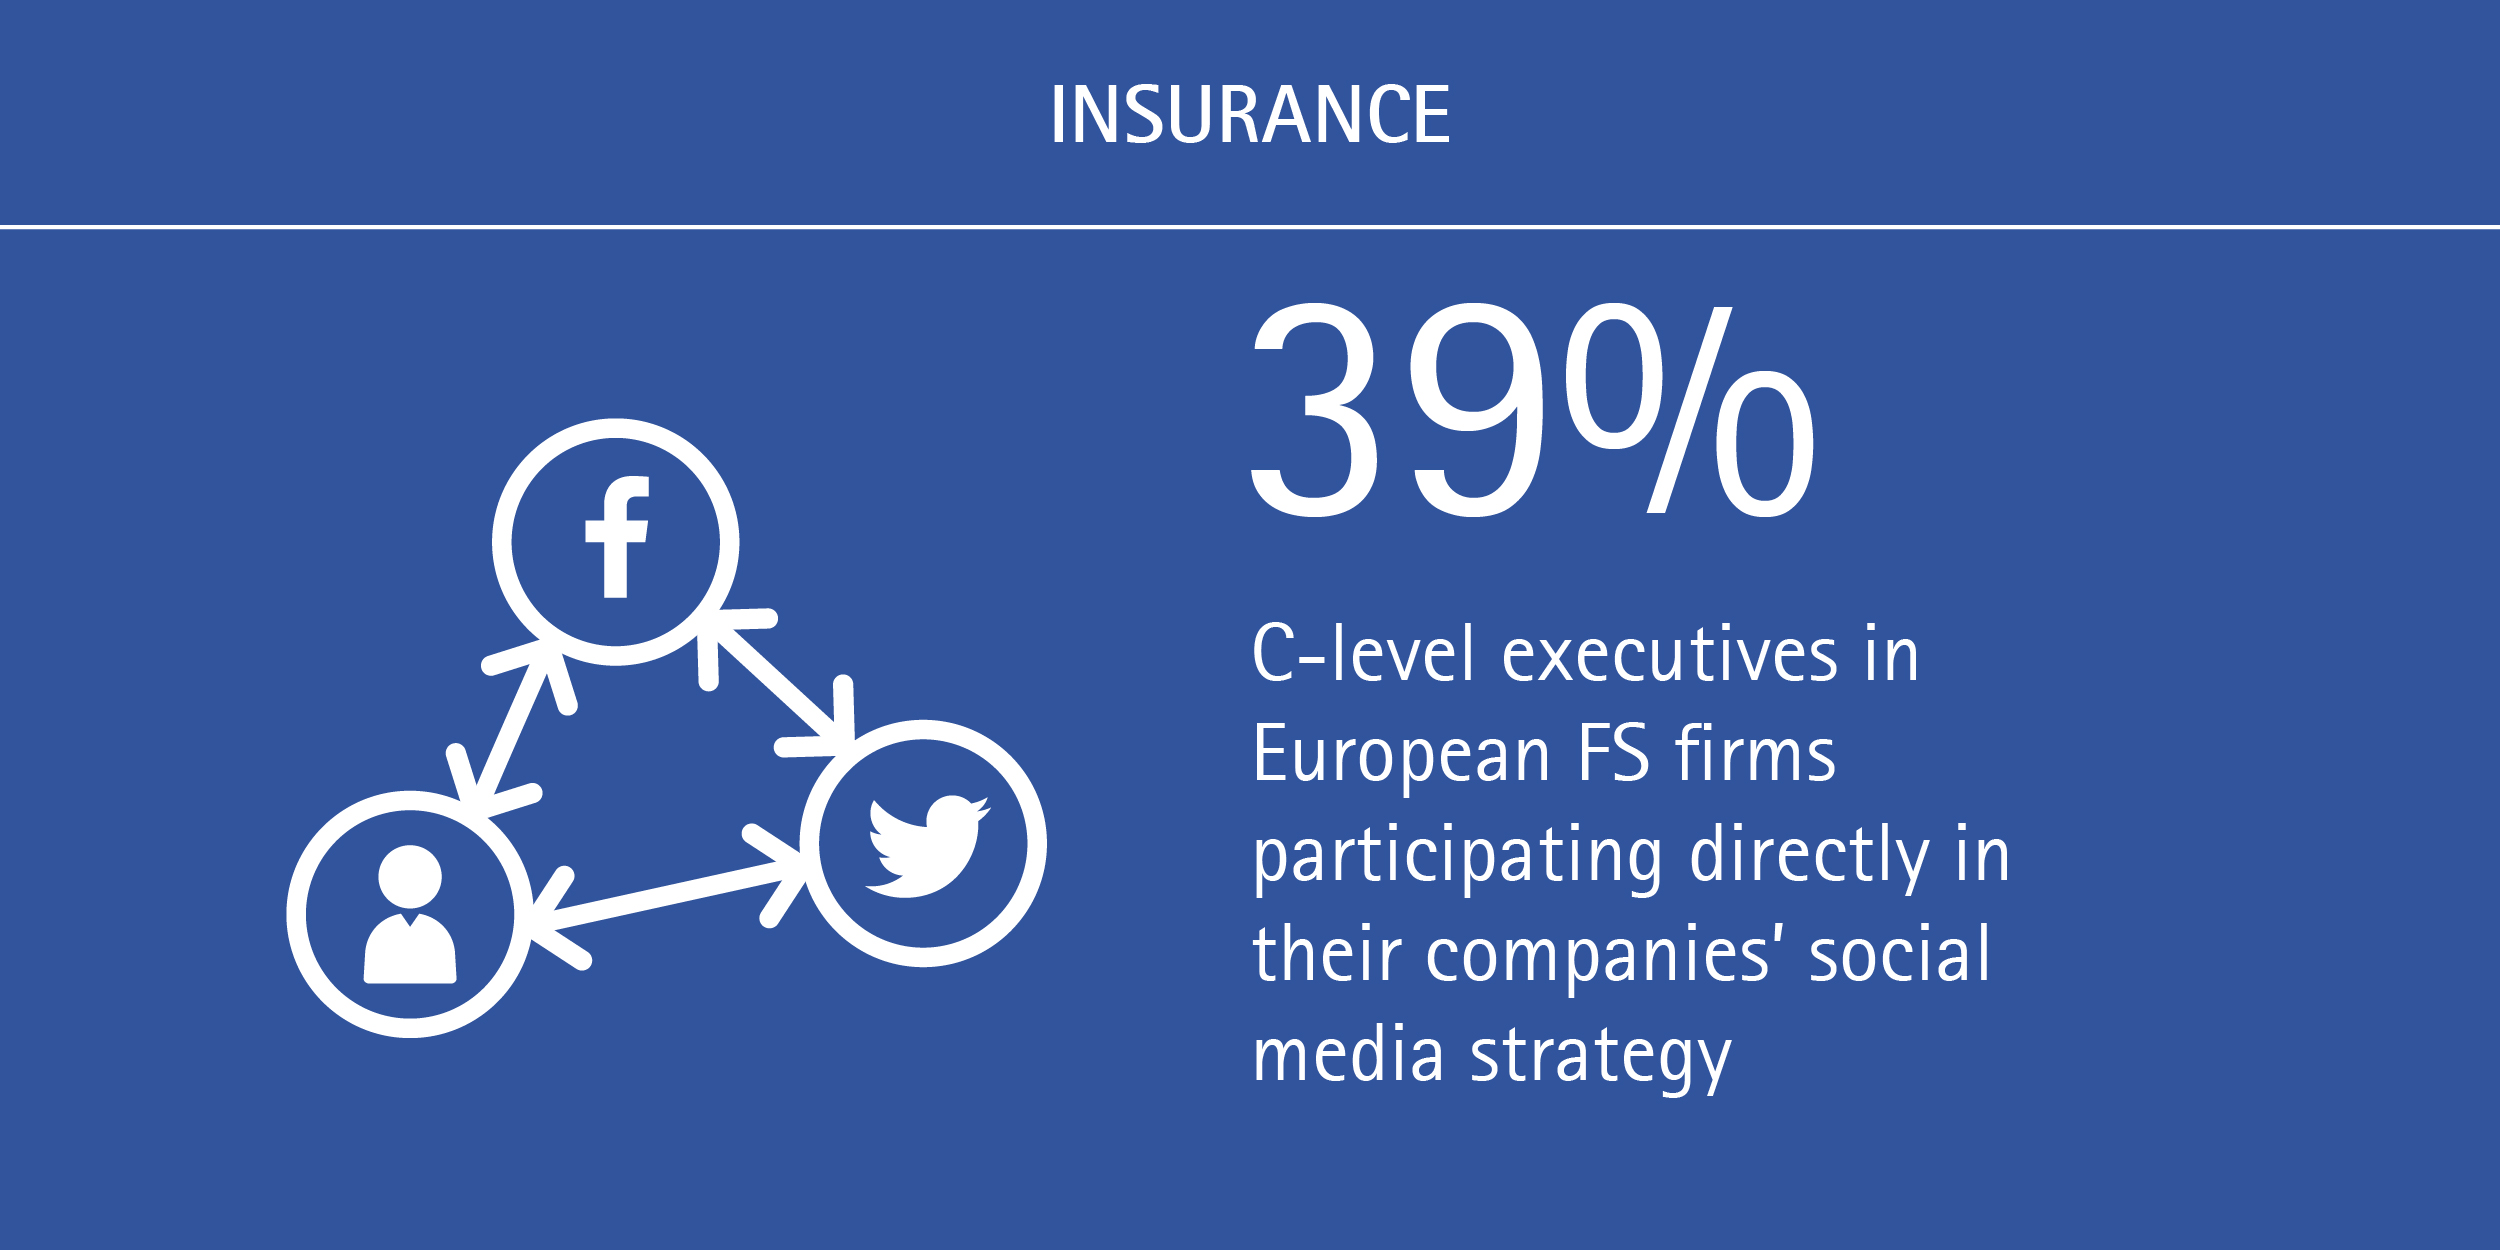 European insurers and banks have digital vision and strategy, but need to act_Accenture INS (FIgure 3)